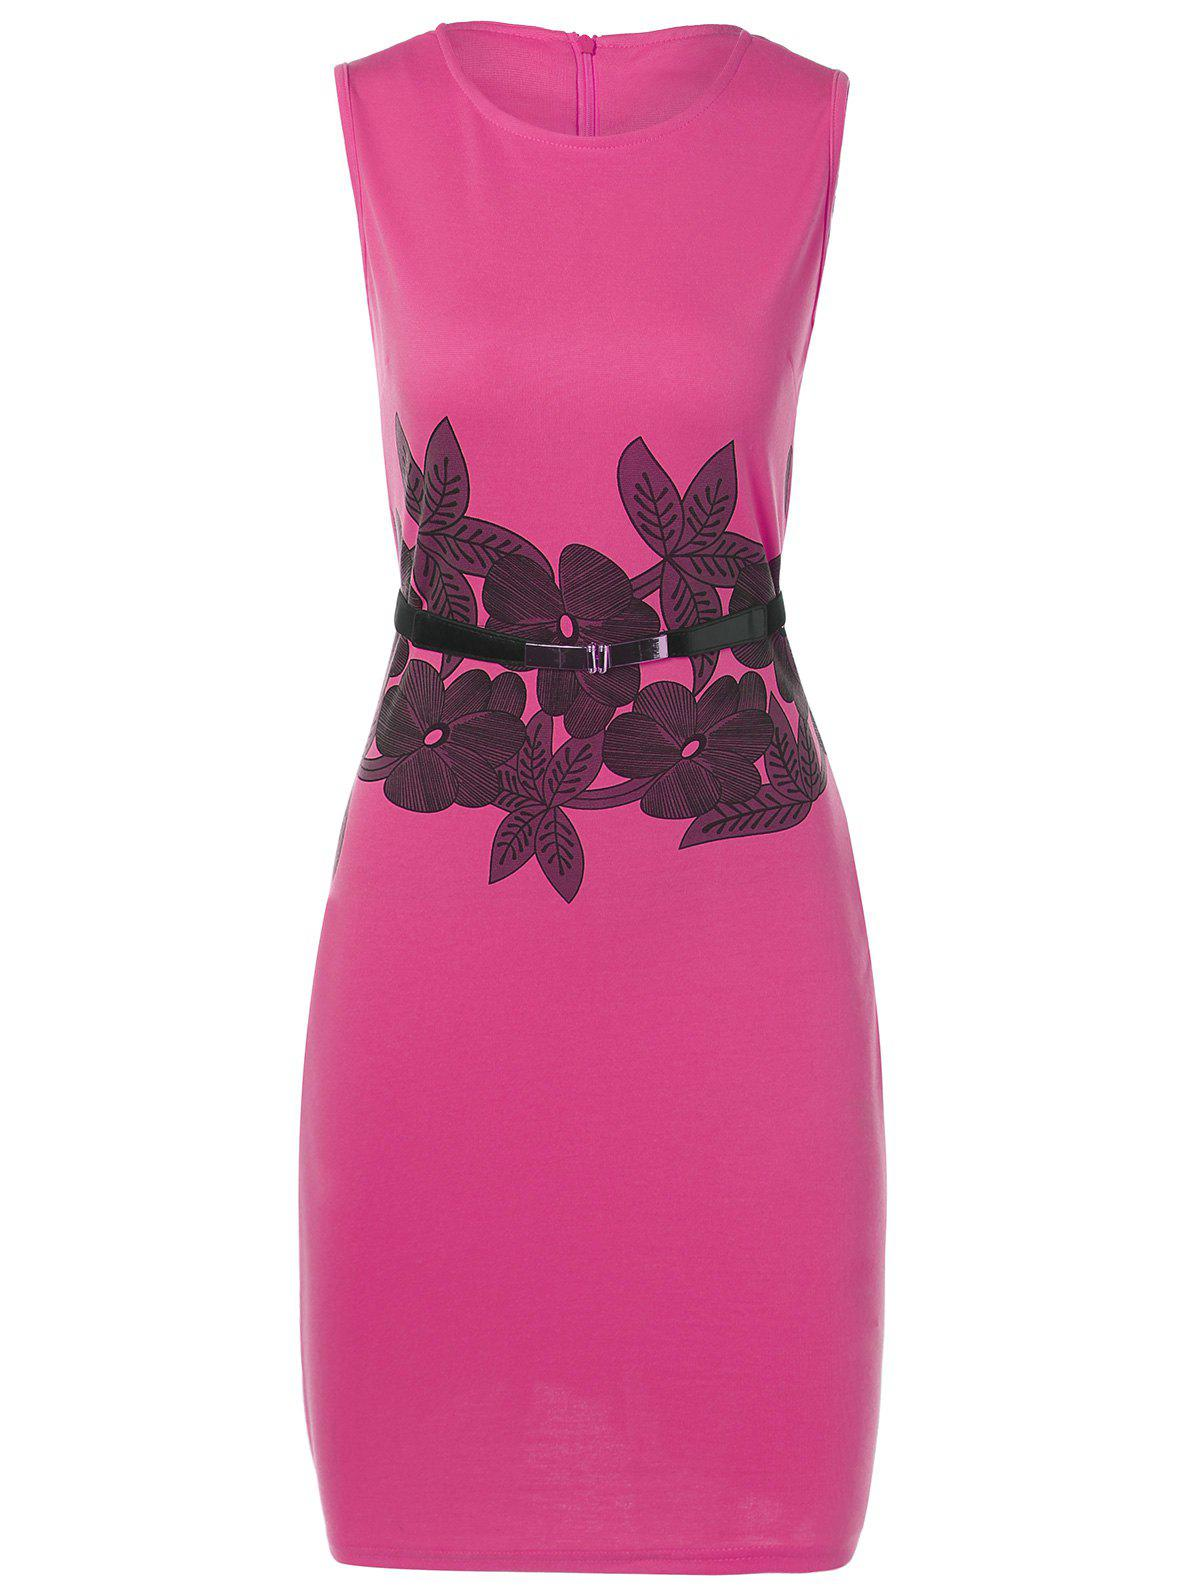 Belted Flower Print Pencil Bodycon Formal Dress - ROSE MADDER M